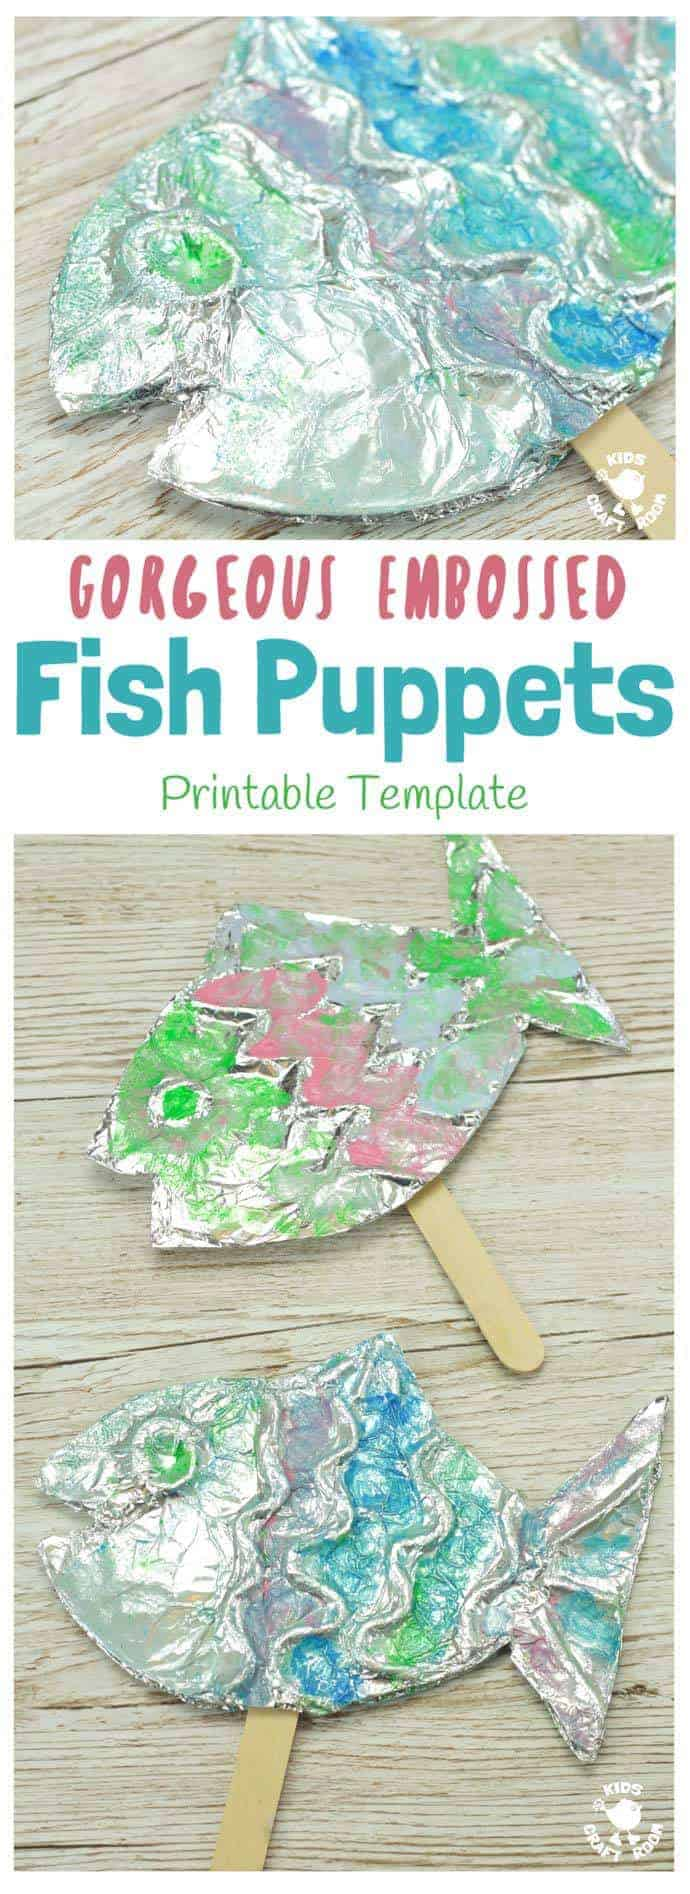 EMBOSSED FOIL FISH PUPPETS - A stunning fish craft with a difference! This embossed foil fish craft appeals to kids of all ages. Enjoy making fish puppets or fish pictures, the results are gorgeous! #fish #fishcrafts #ocean #oceancrafts #puppets #puppetcrafts #homemadepuppets #kidscrafts #craftsforkids #kidscraftroom #summercrafts #beachcrafts #kidsactivities